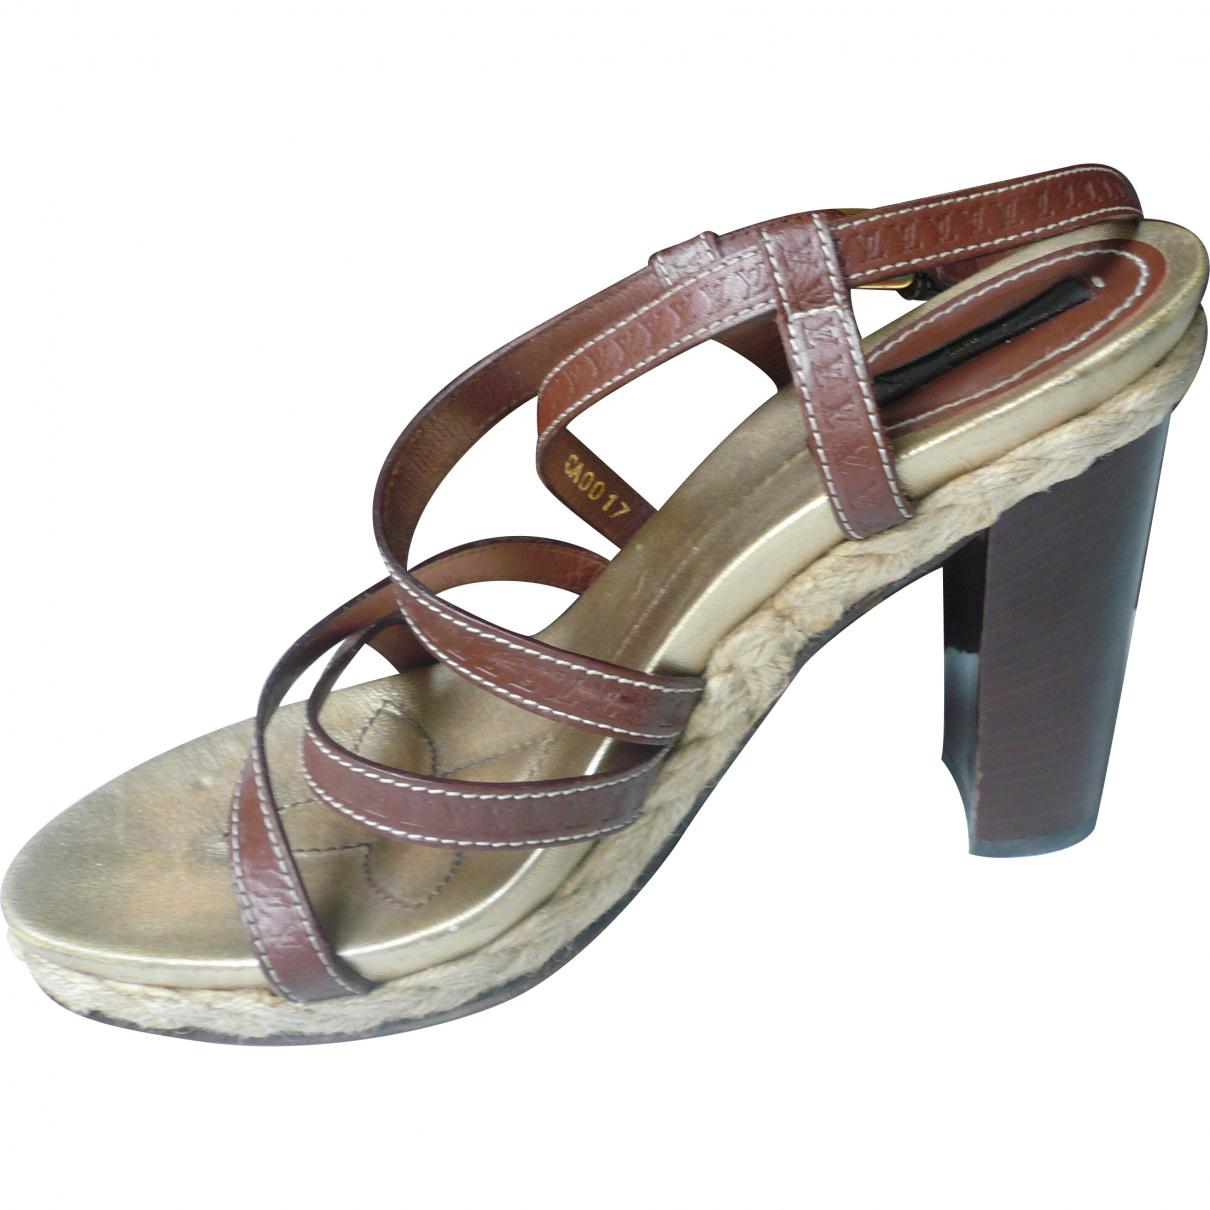 Pre-owned - Leather sandals Louis Vuitton r908YR